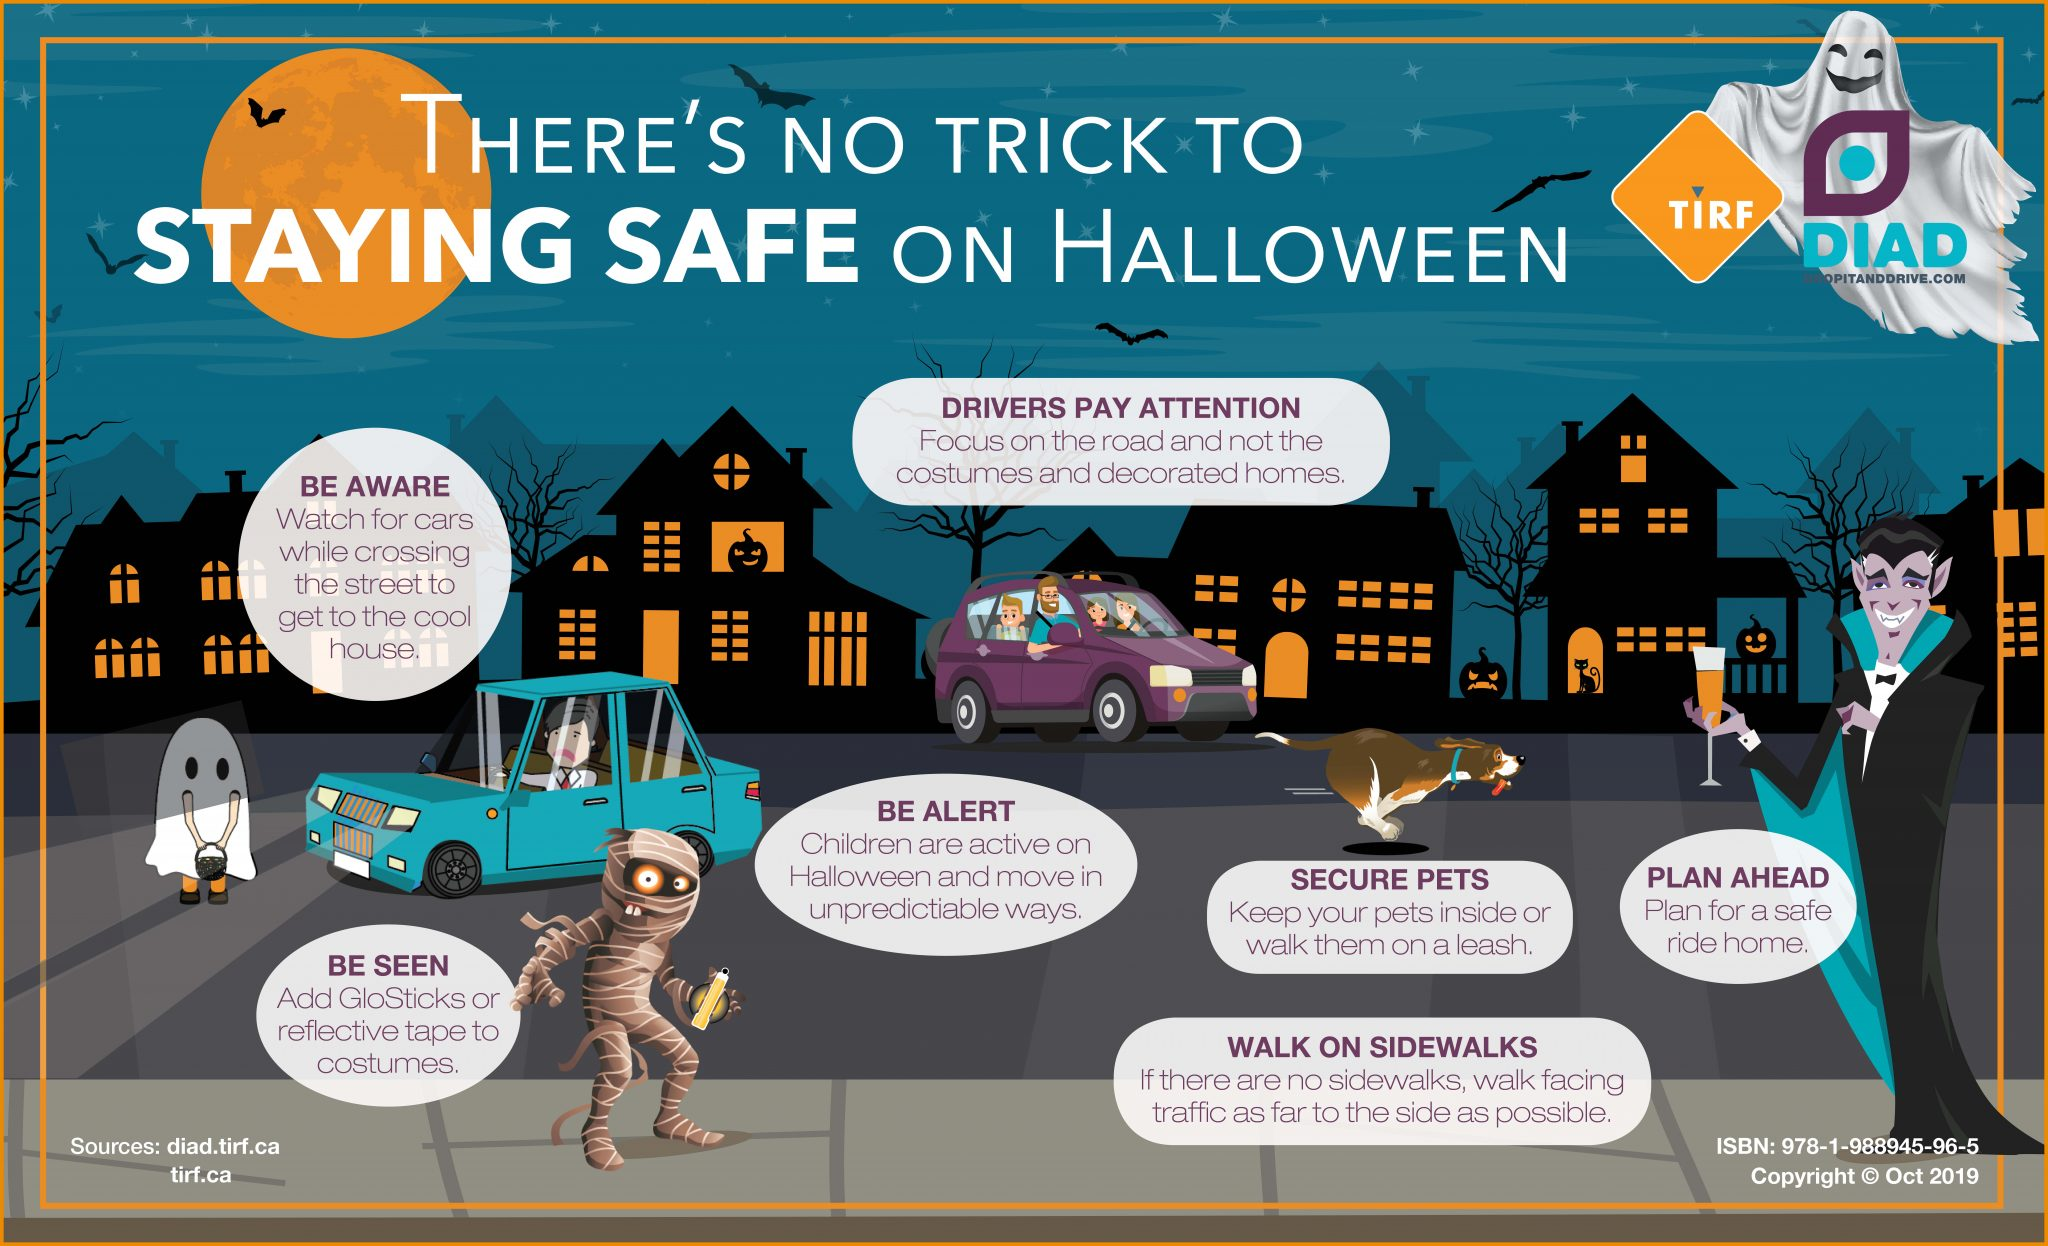 There's No Trick to Staying Safe on Halloween